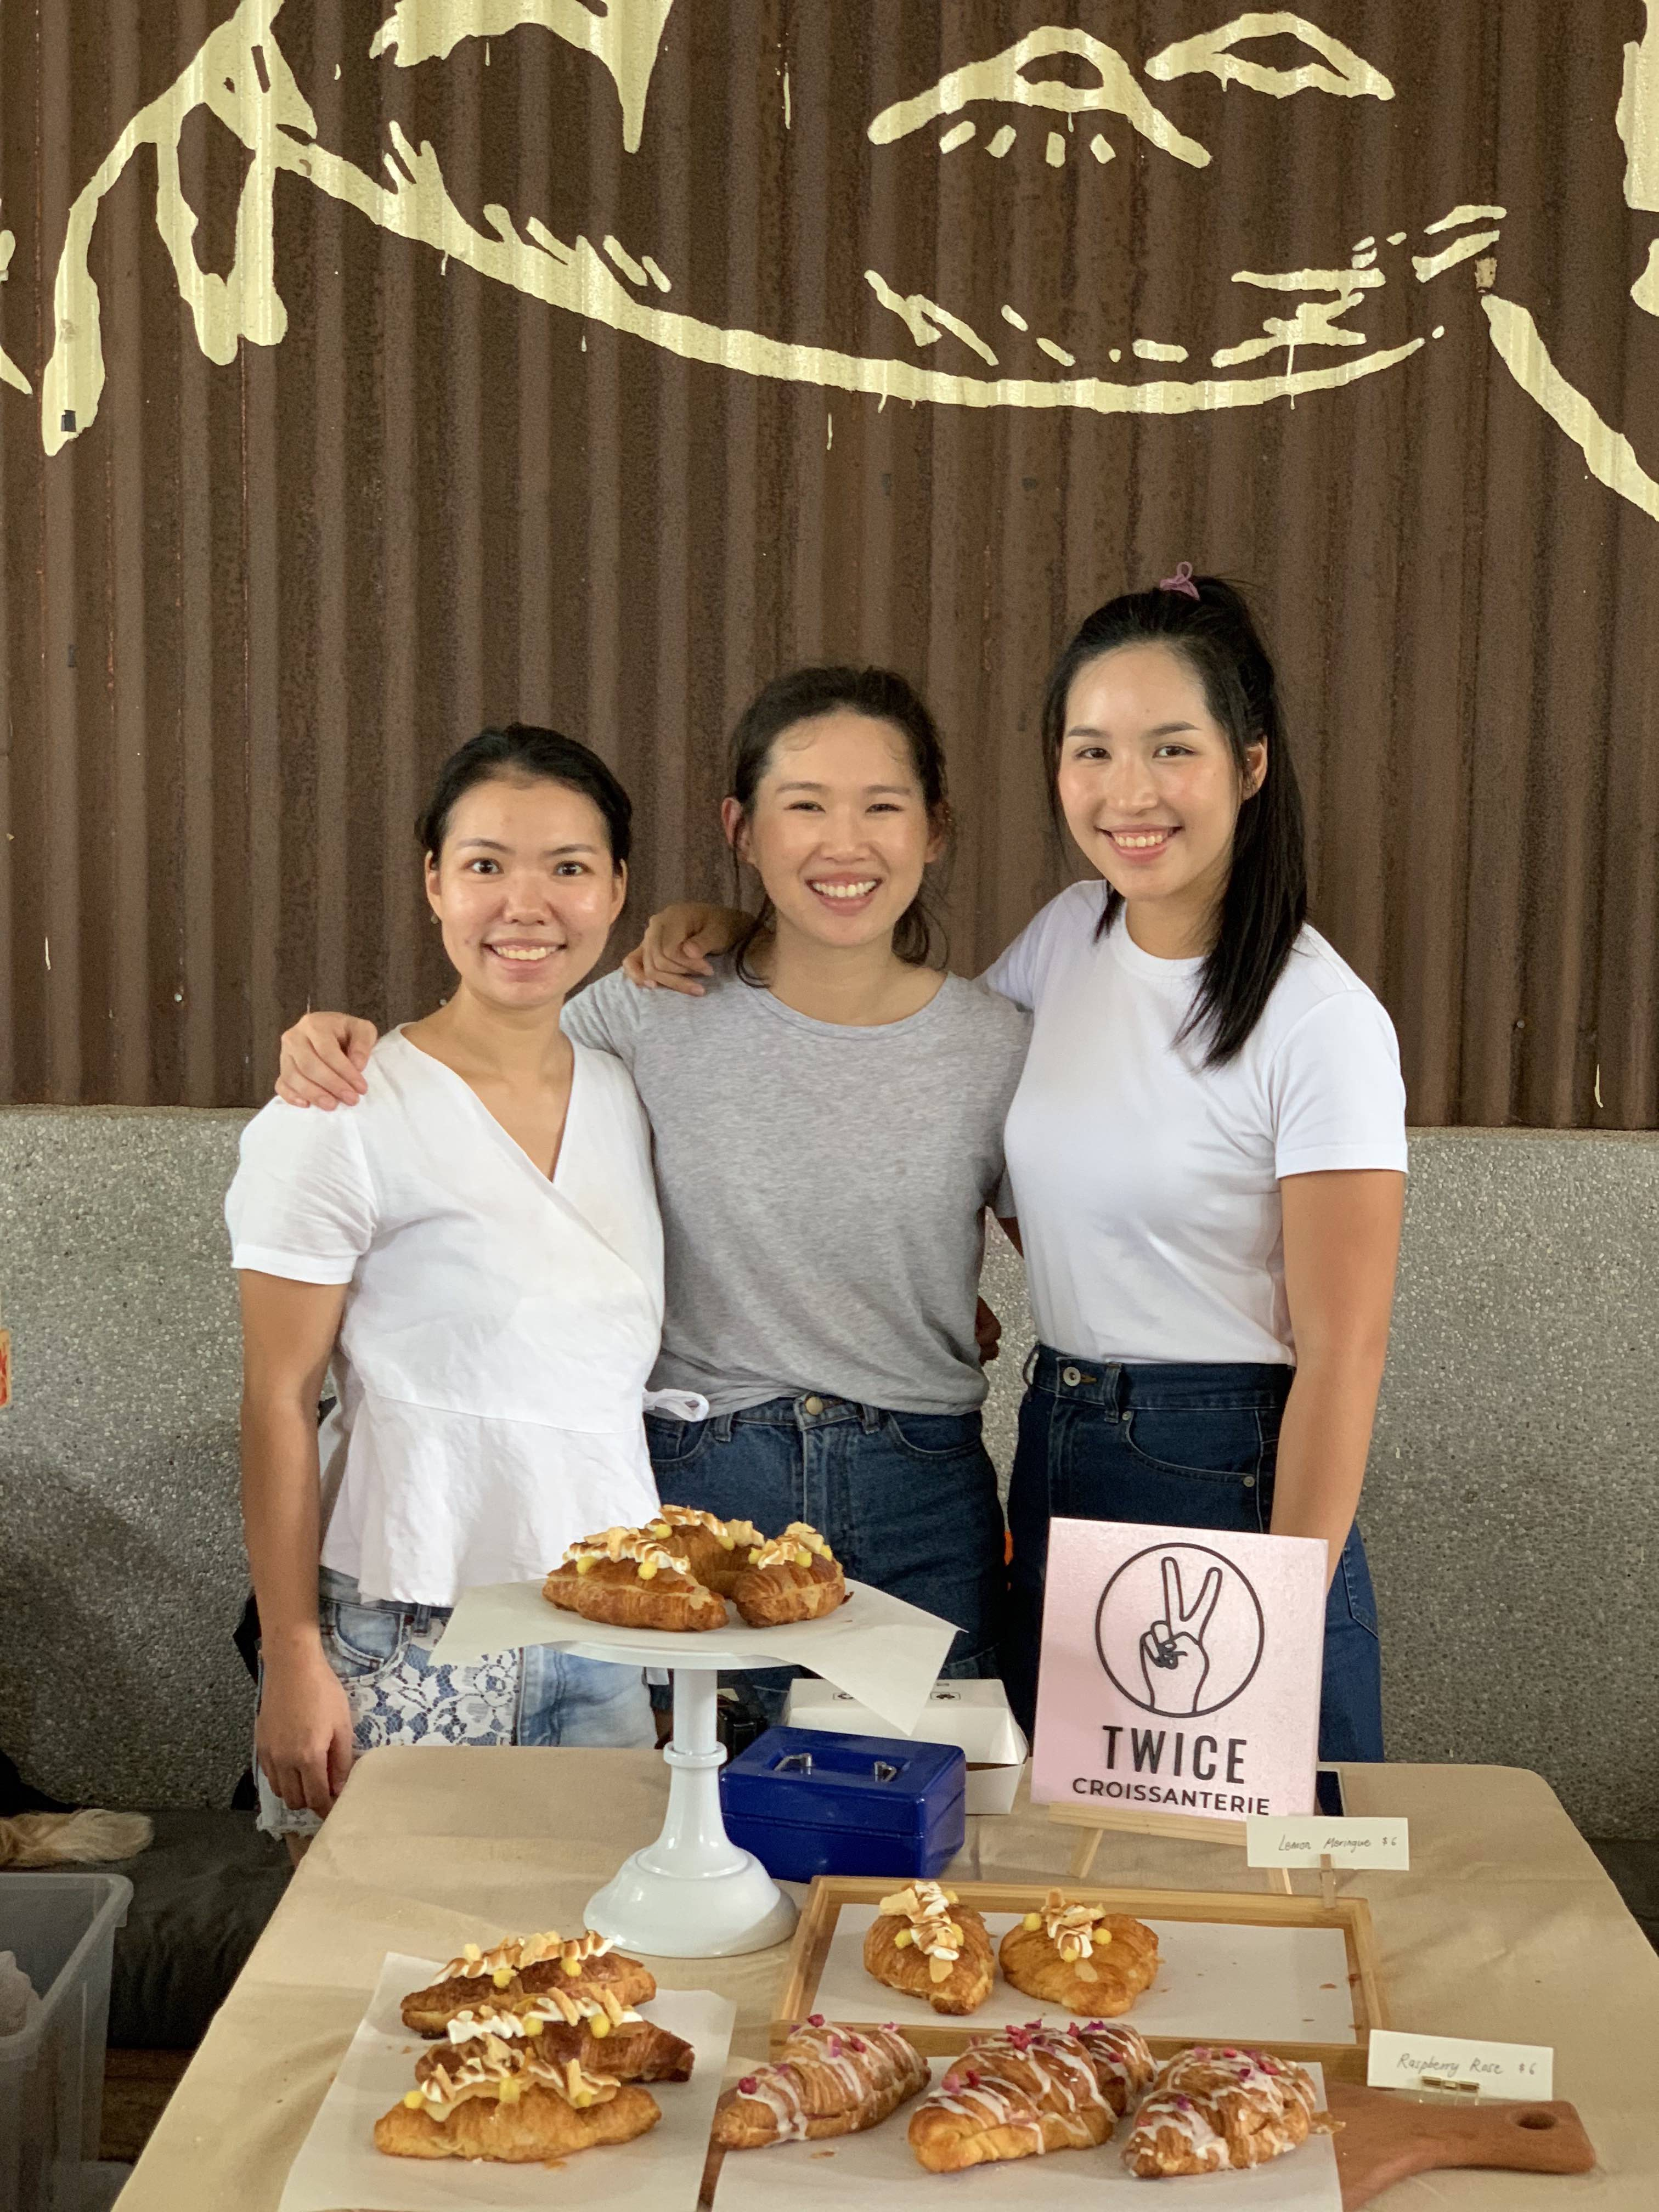 From left to right: Janice, Ying and Jennifer